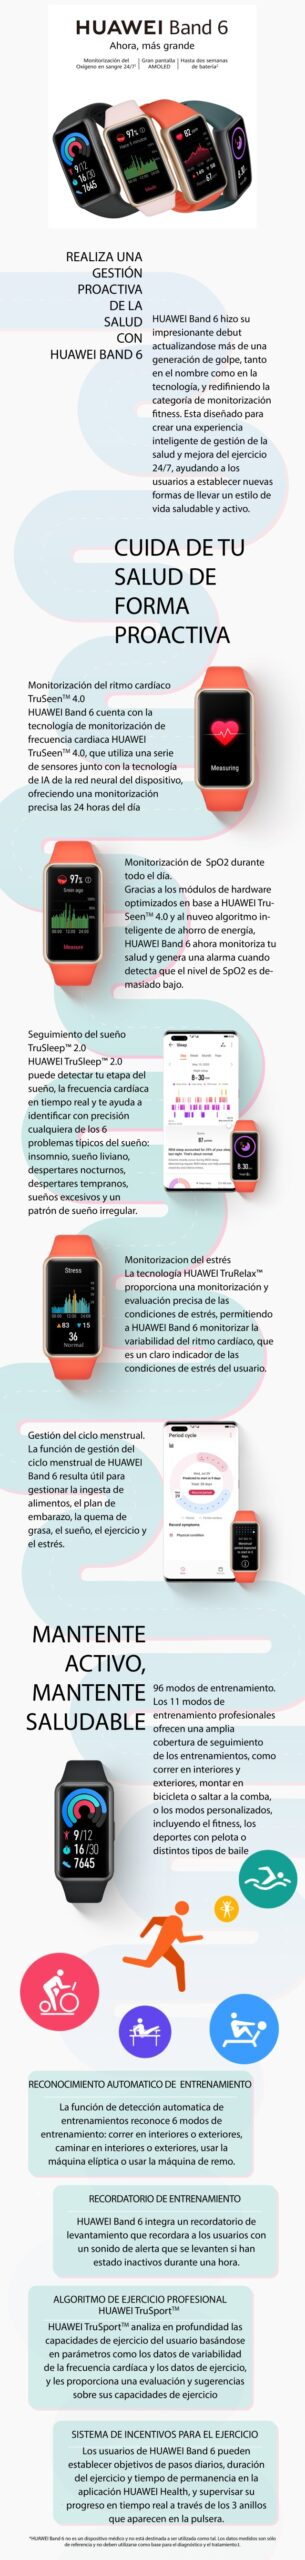 Infographic with the most relevant data from HUAWEI Band 6